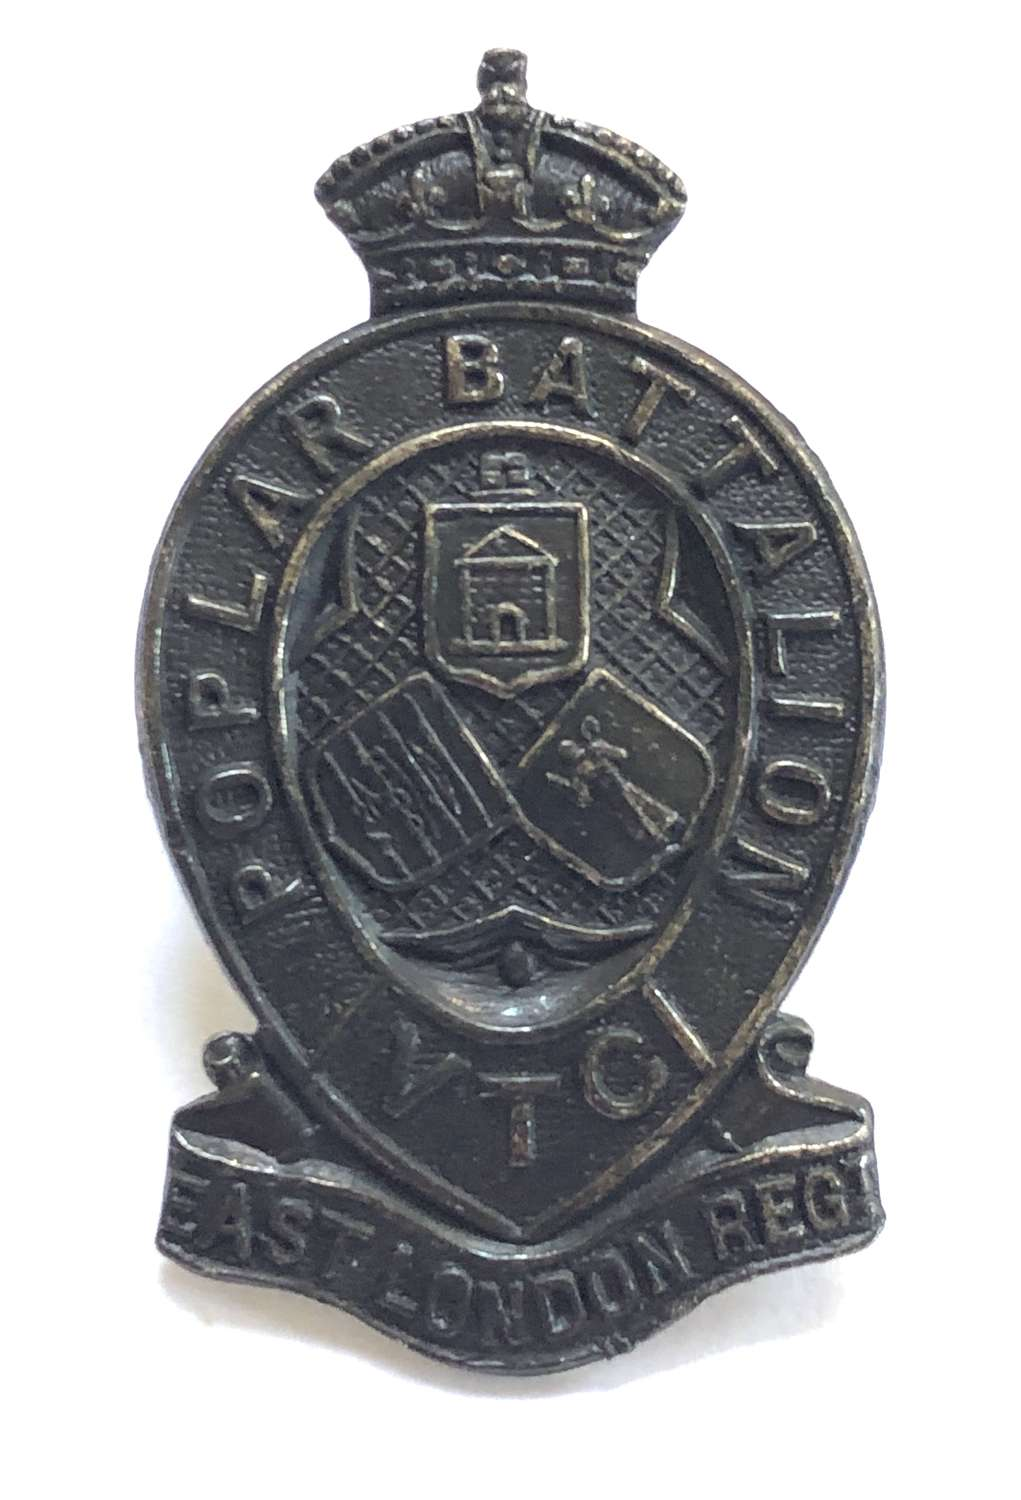 Poplar Battalion, East London Regiment VTC scarce WW1 cap badge